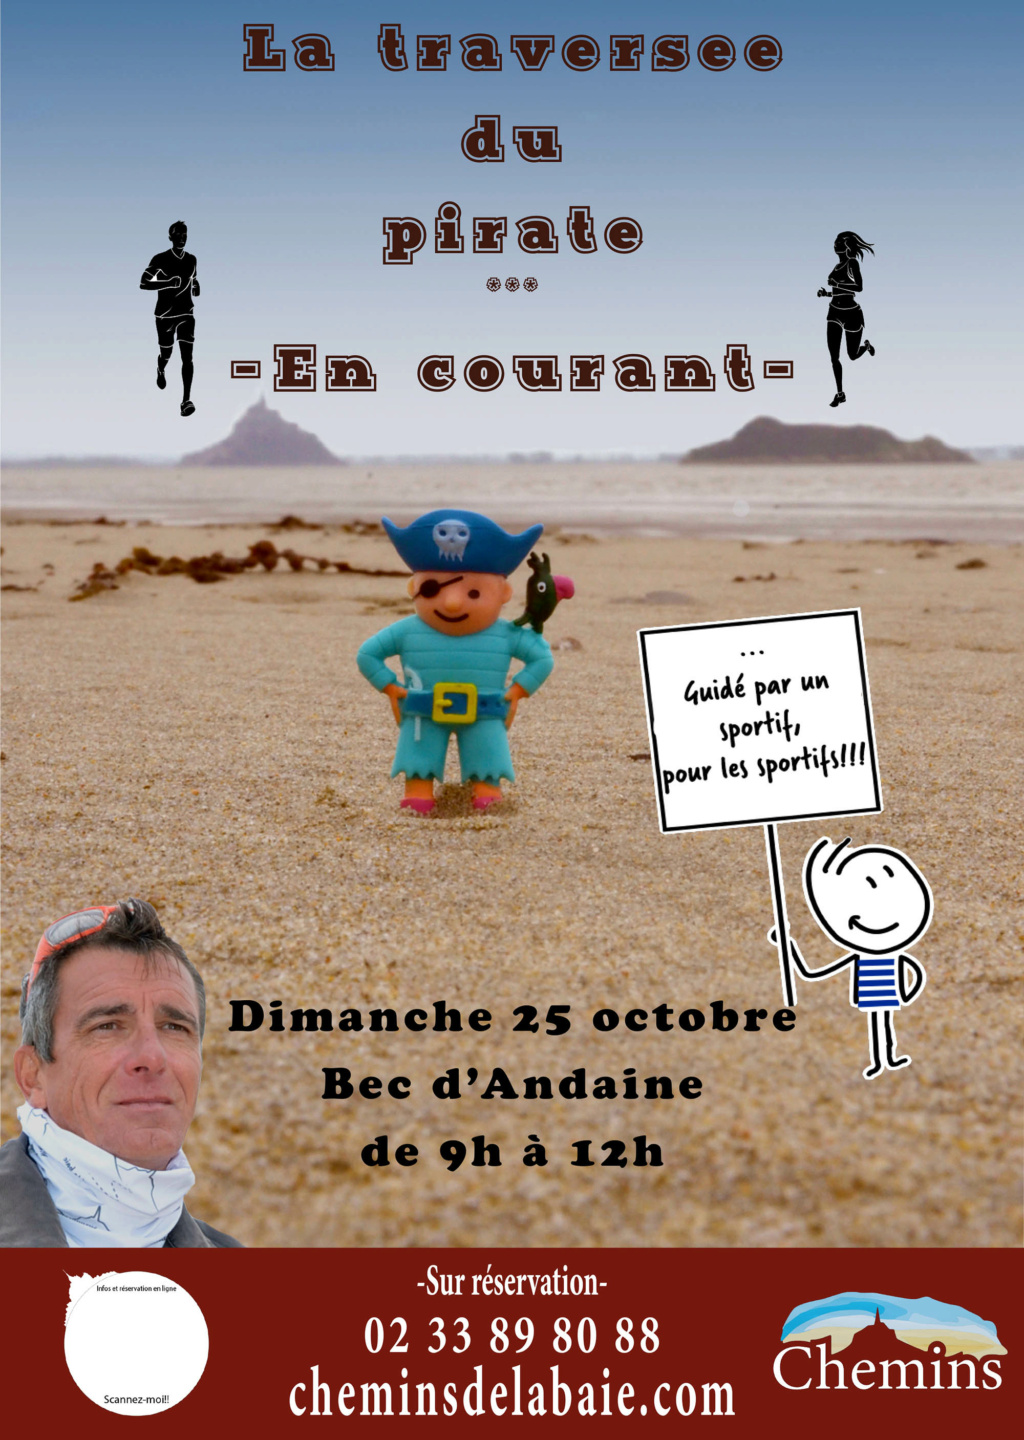 La traversée du pirate en courant Traver10